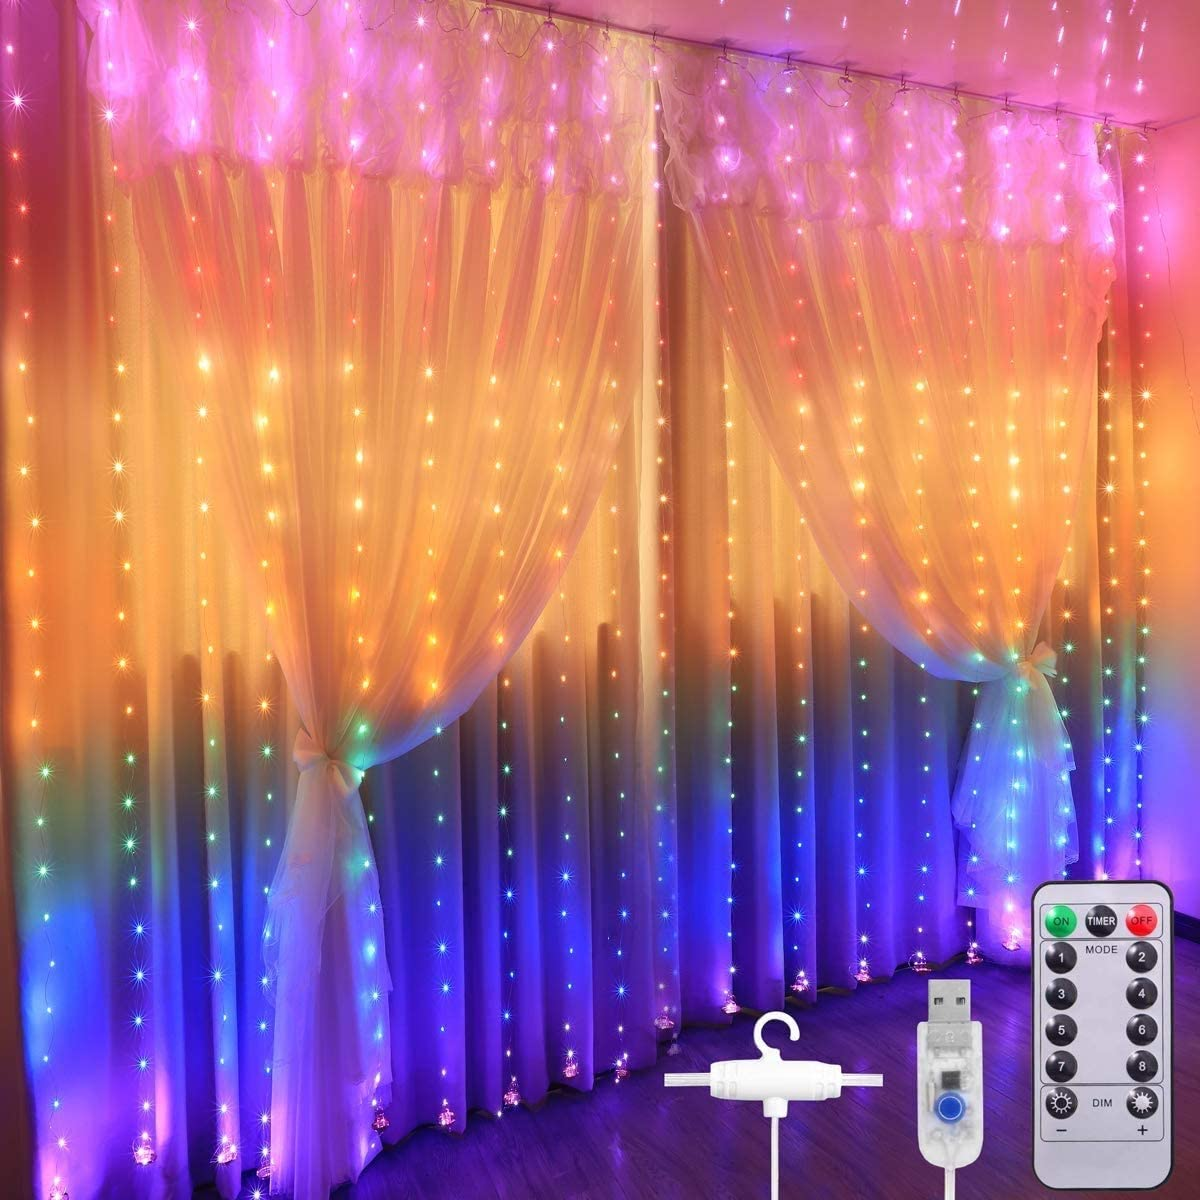 ANWER 280 LED Curtain Lights, 3m x 2.8m USB Window Fairy String Lights with 8 Modes Remote Control Timer Waterproof Copper Light for Outdoor Indoor Wedding Party Garden Bedroom Decoration